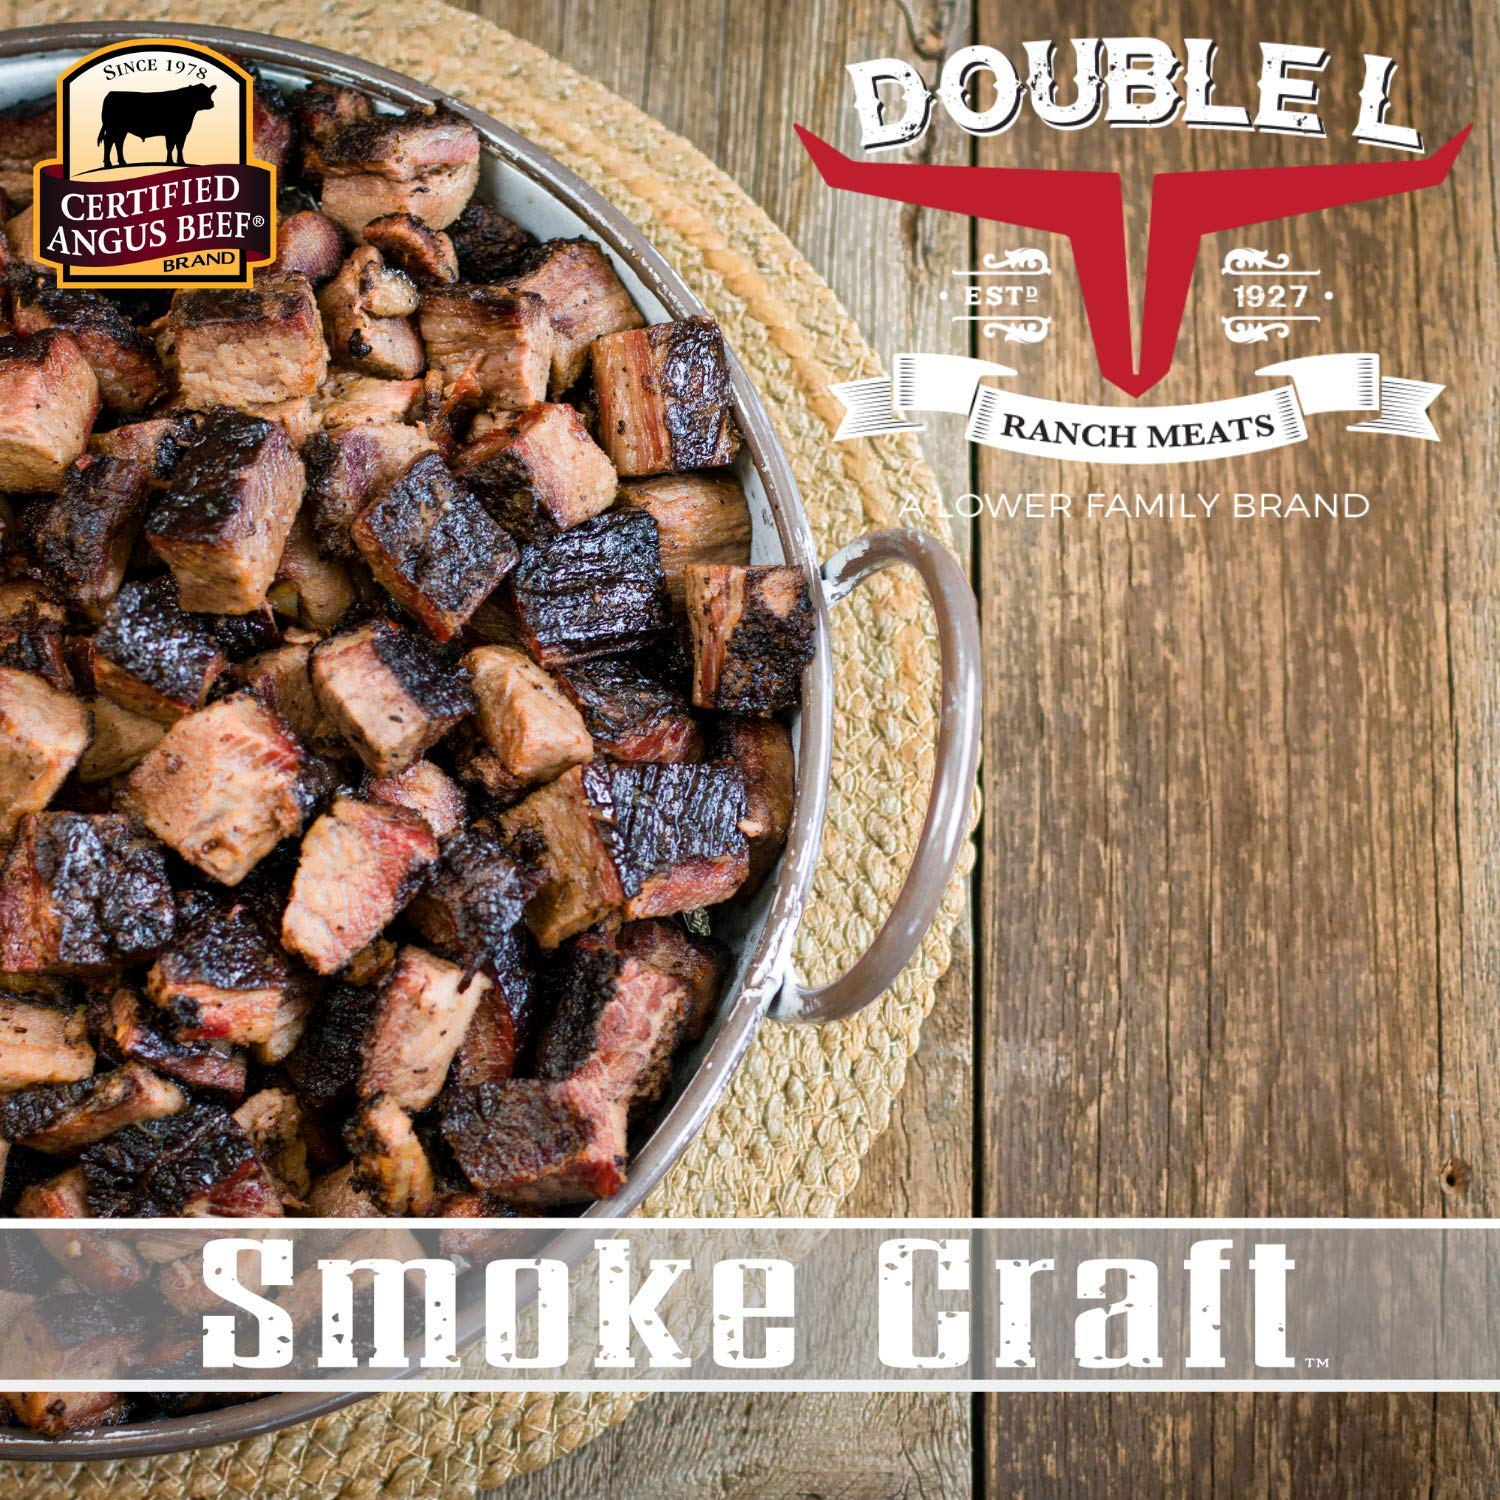 Beef Brisket Burnt Ends by Double L Ranch Meats | Hickory Smoked and Ready to Serve | 10 Lbs.